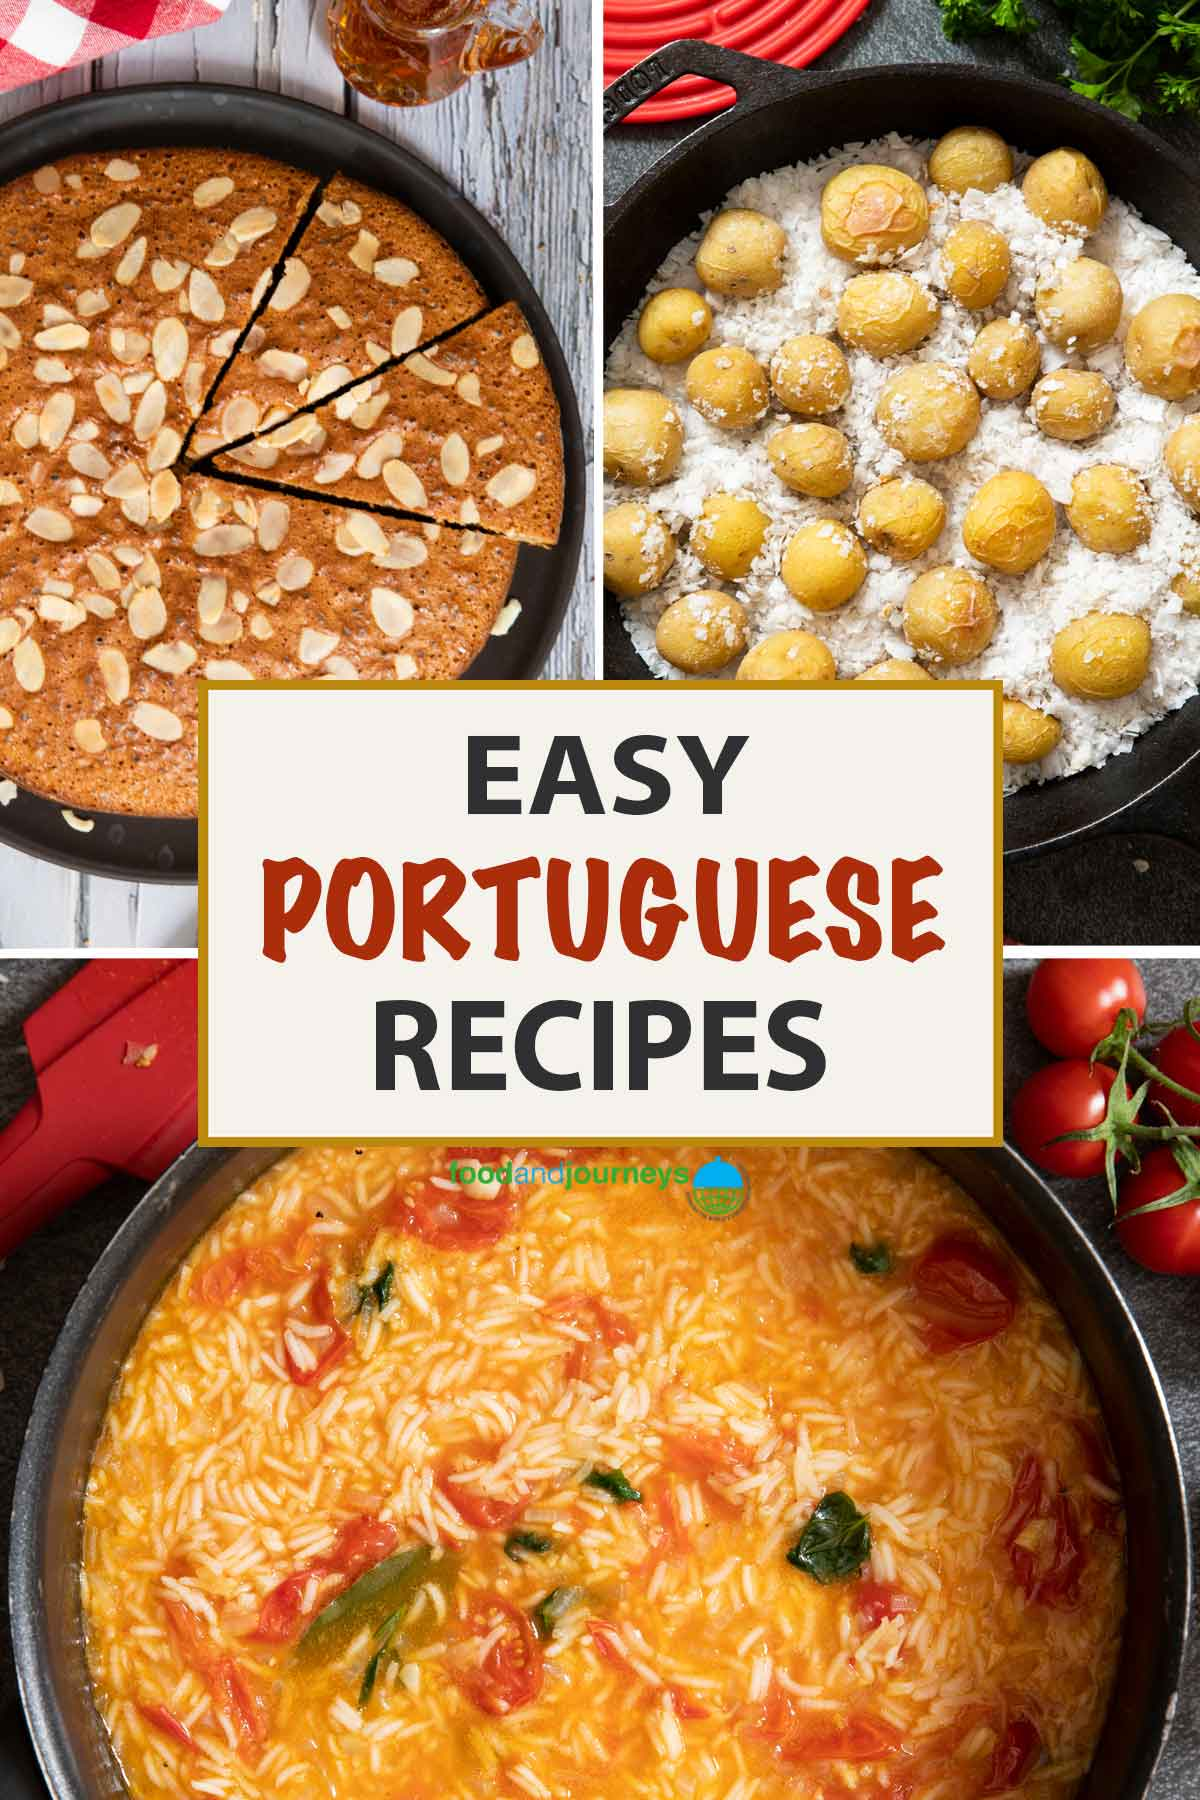 A collage of images showing traditional Portuguese recipes.